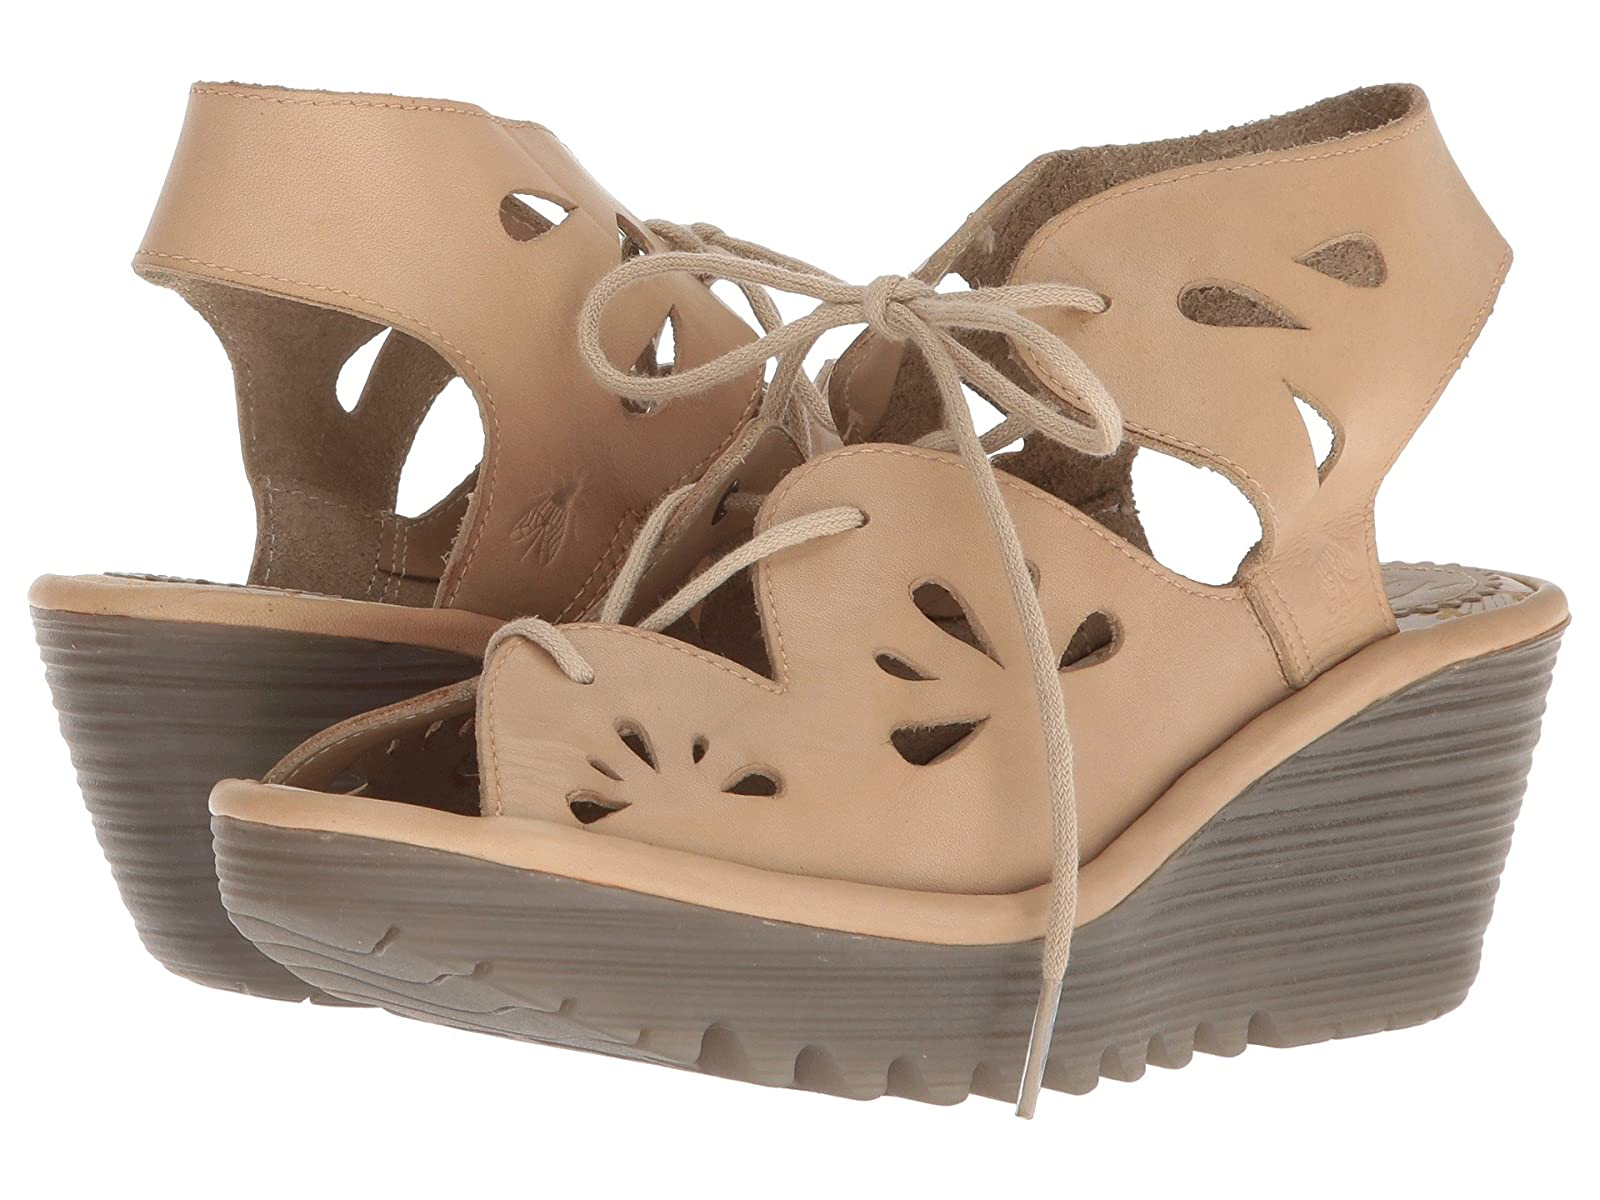 FLY LONDON YOTE828FLYCheap and distinctive eye-catching shoes